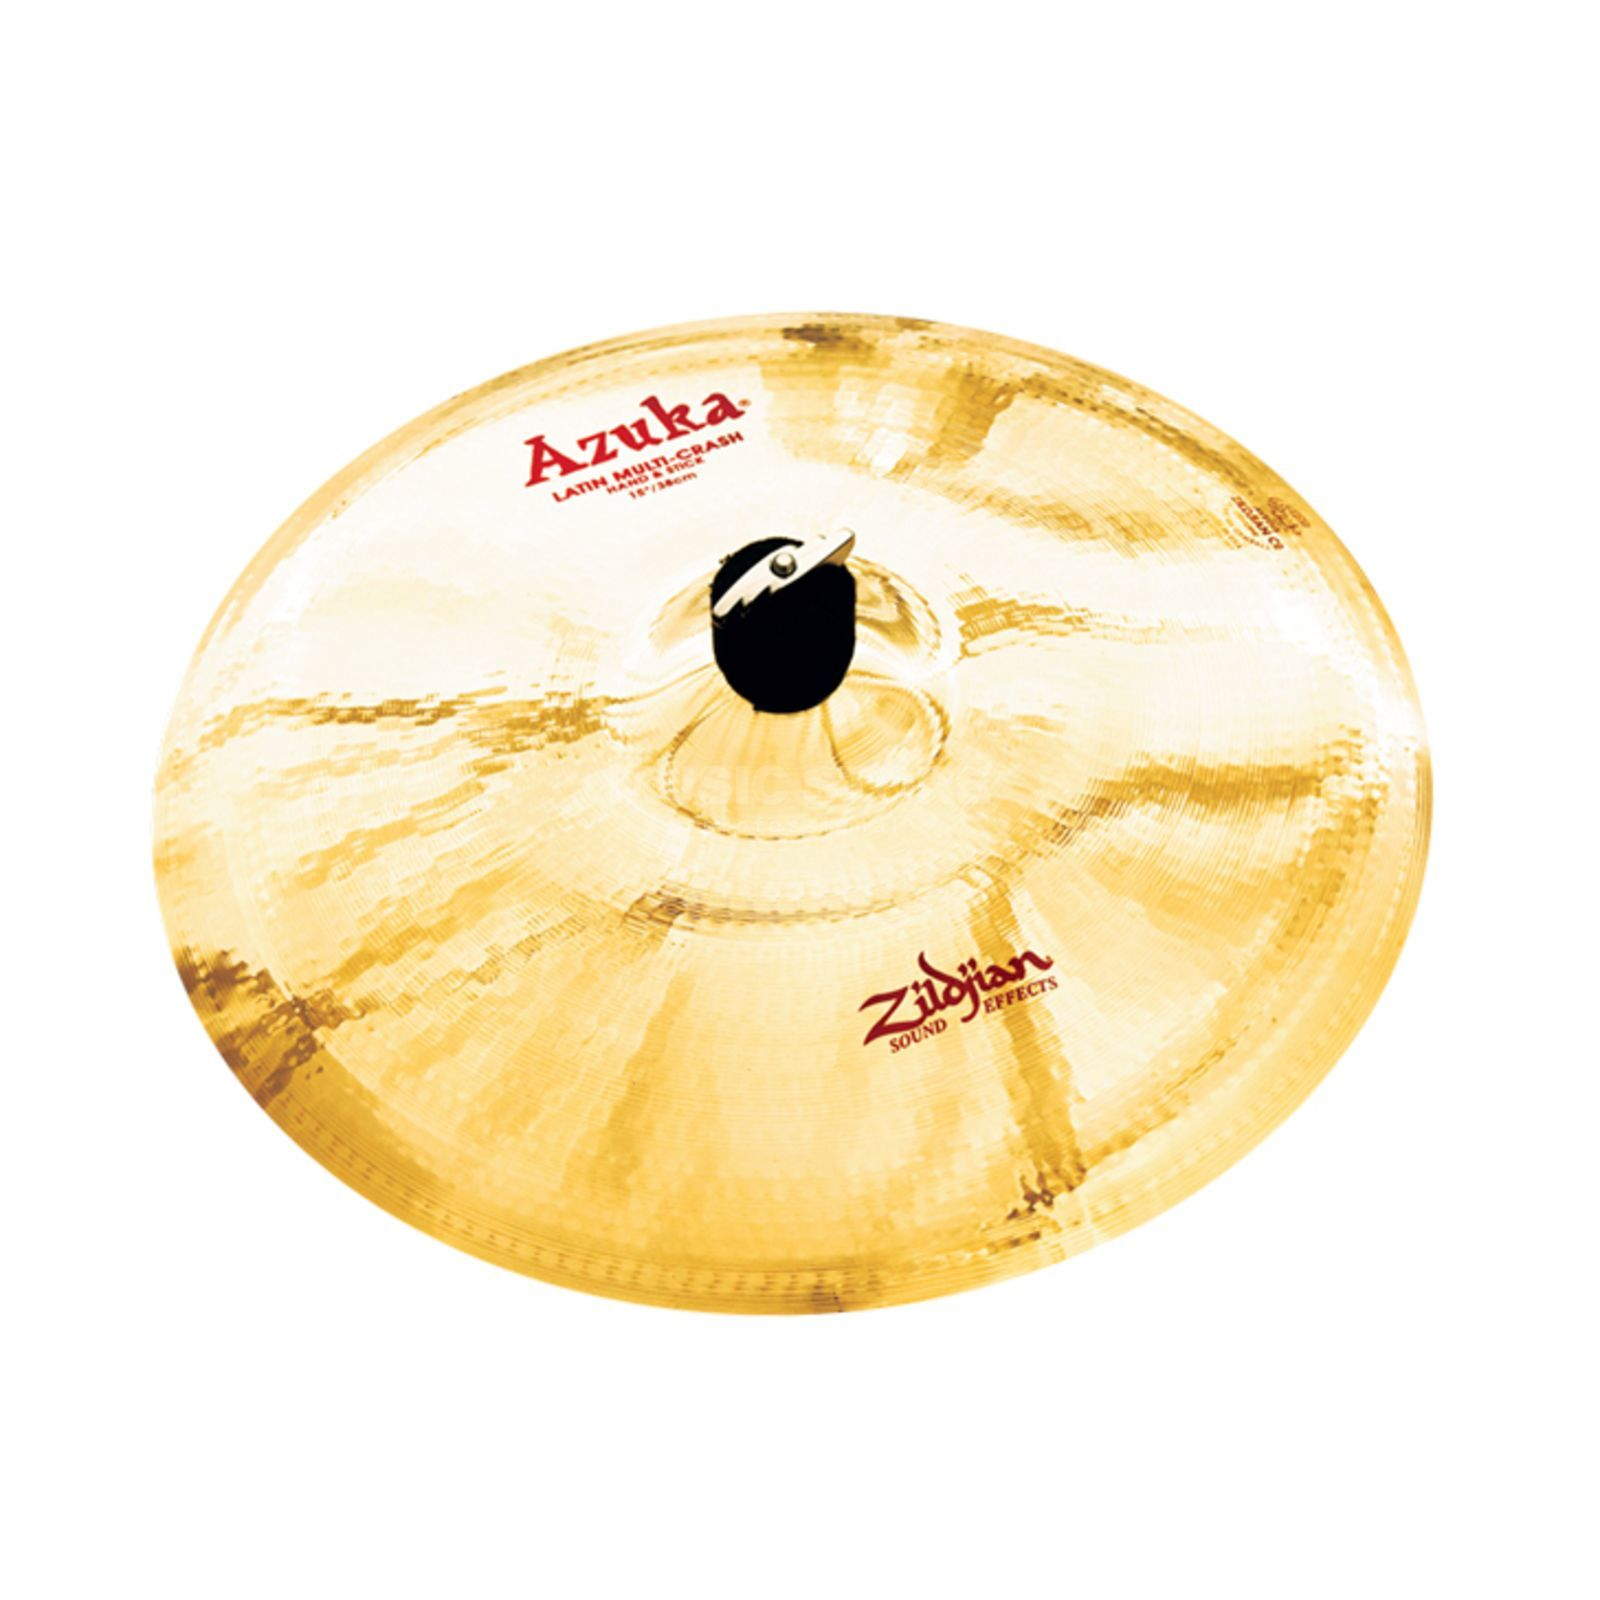 "Zildjian Azuka Latin Multi Crash 15"", Brilliant Finish Изображение товара"